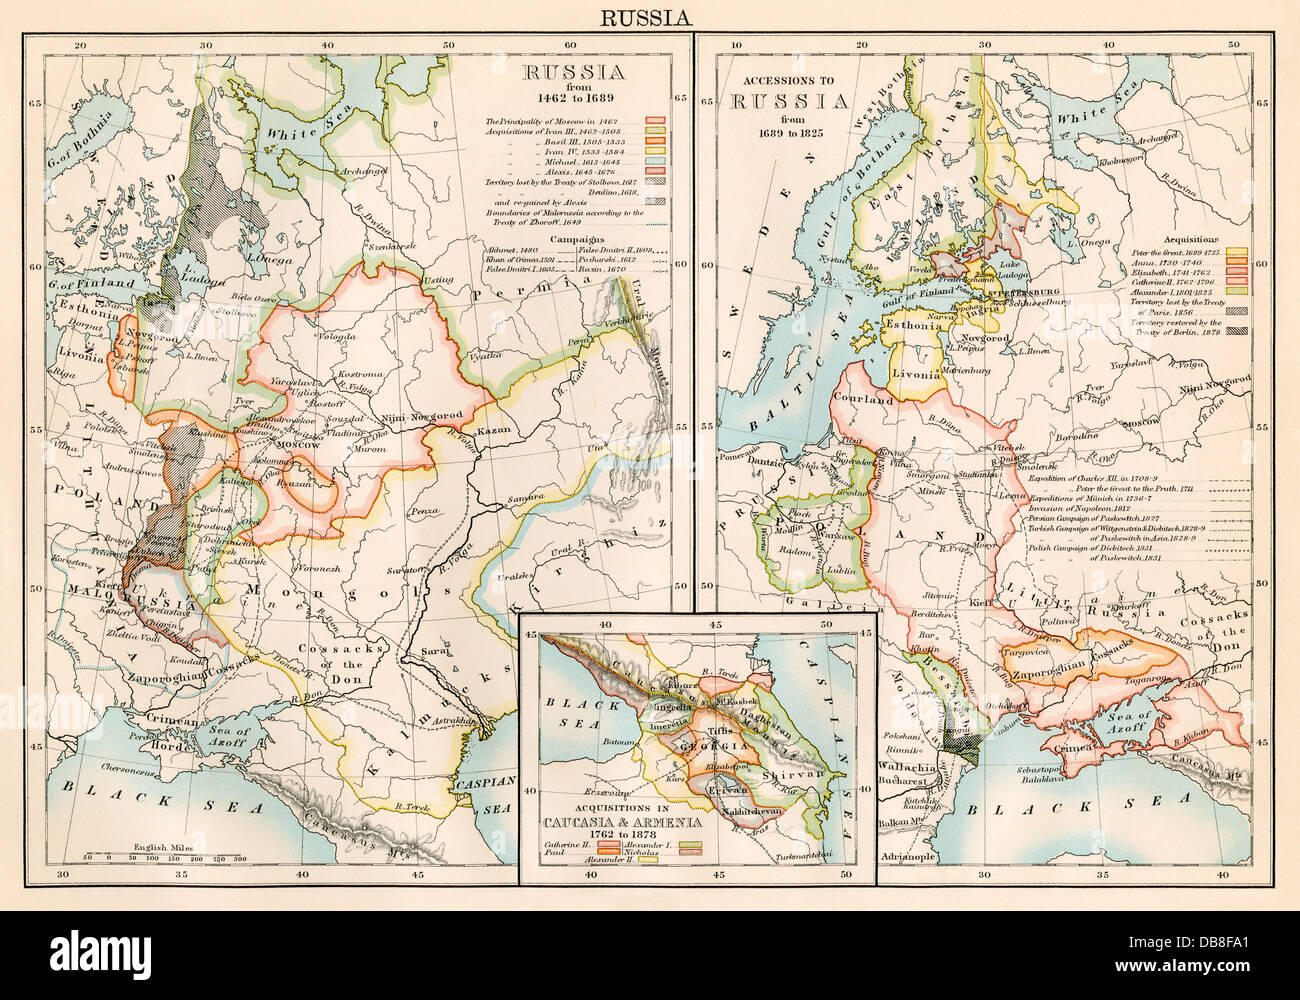 Russia 1462-1689 (left); lands added to Russian Empire 1689-1825 (right), plus Armenia and Caucasia (inset). Color Stock Photo